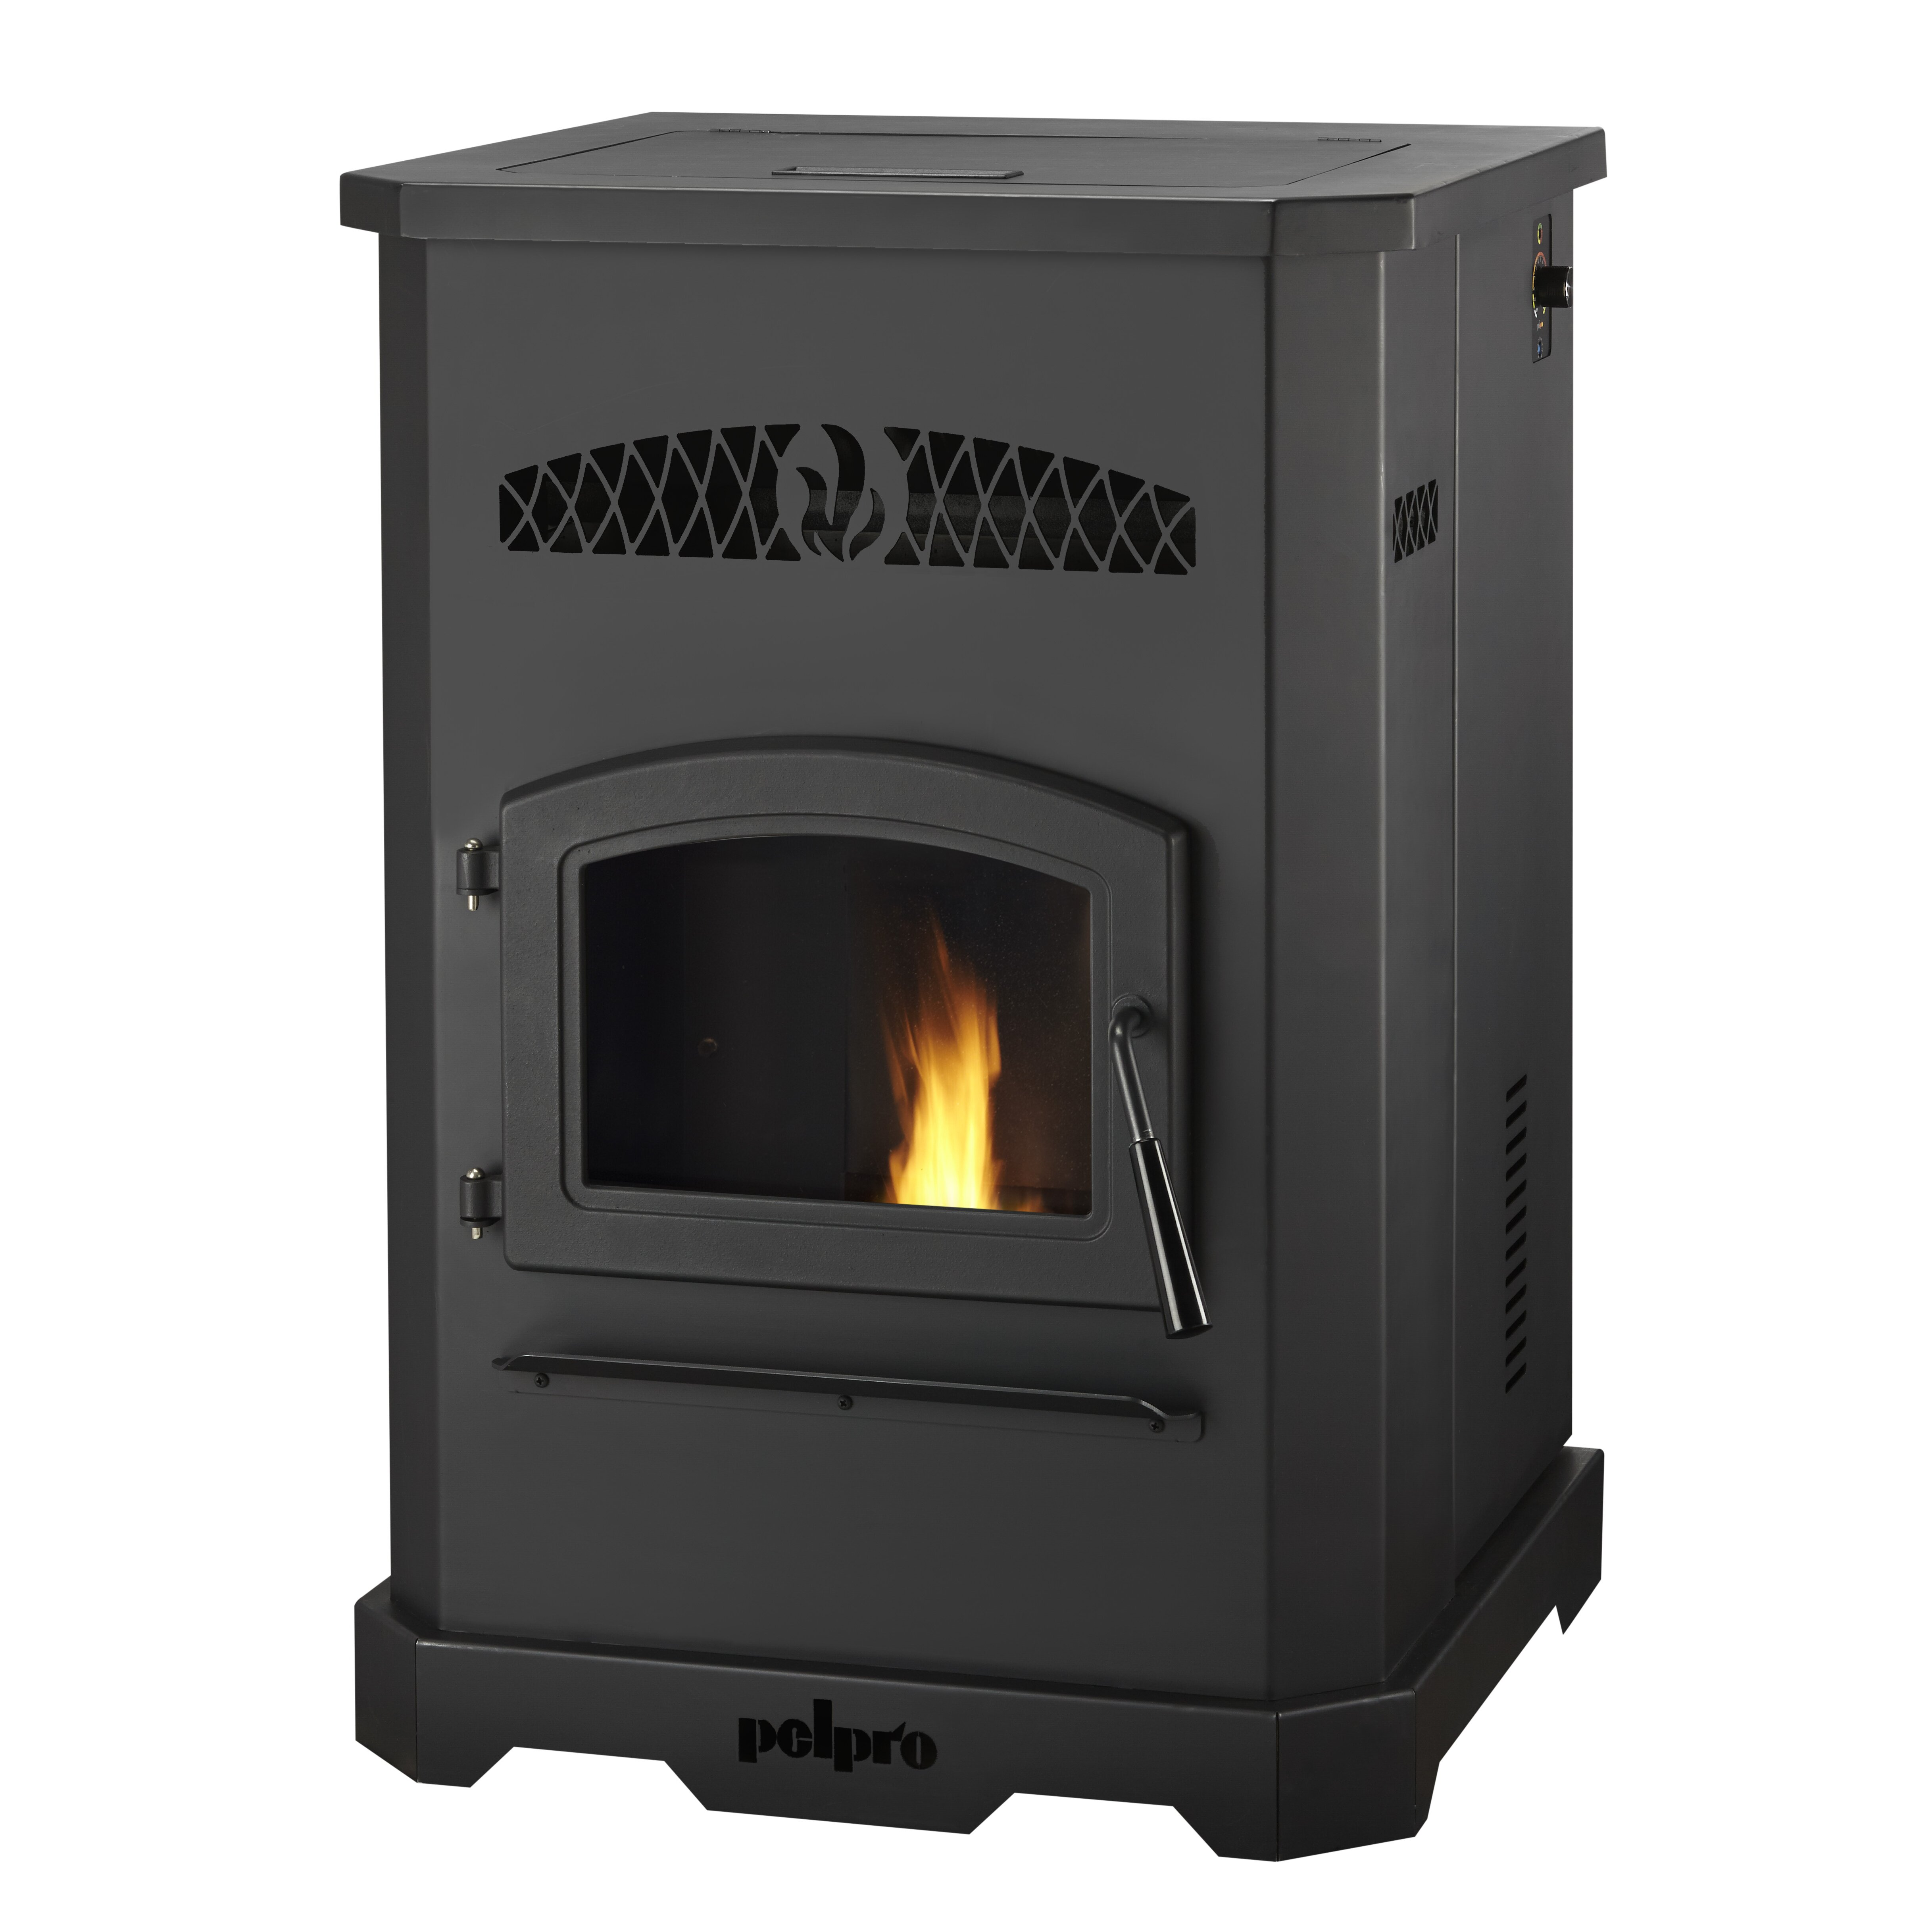 Pelpro Pellet Stove Reviews